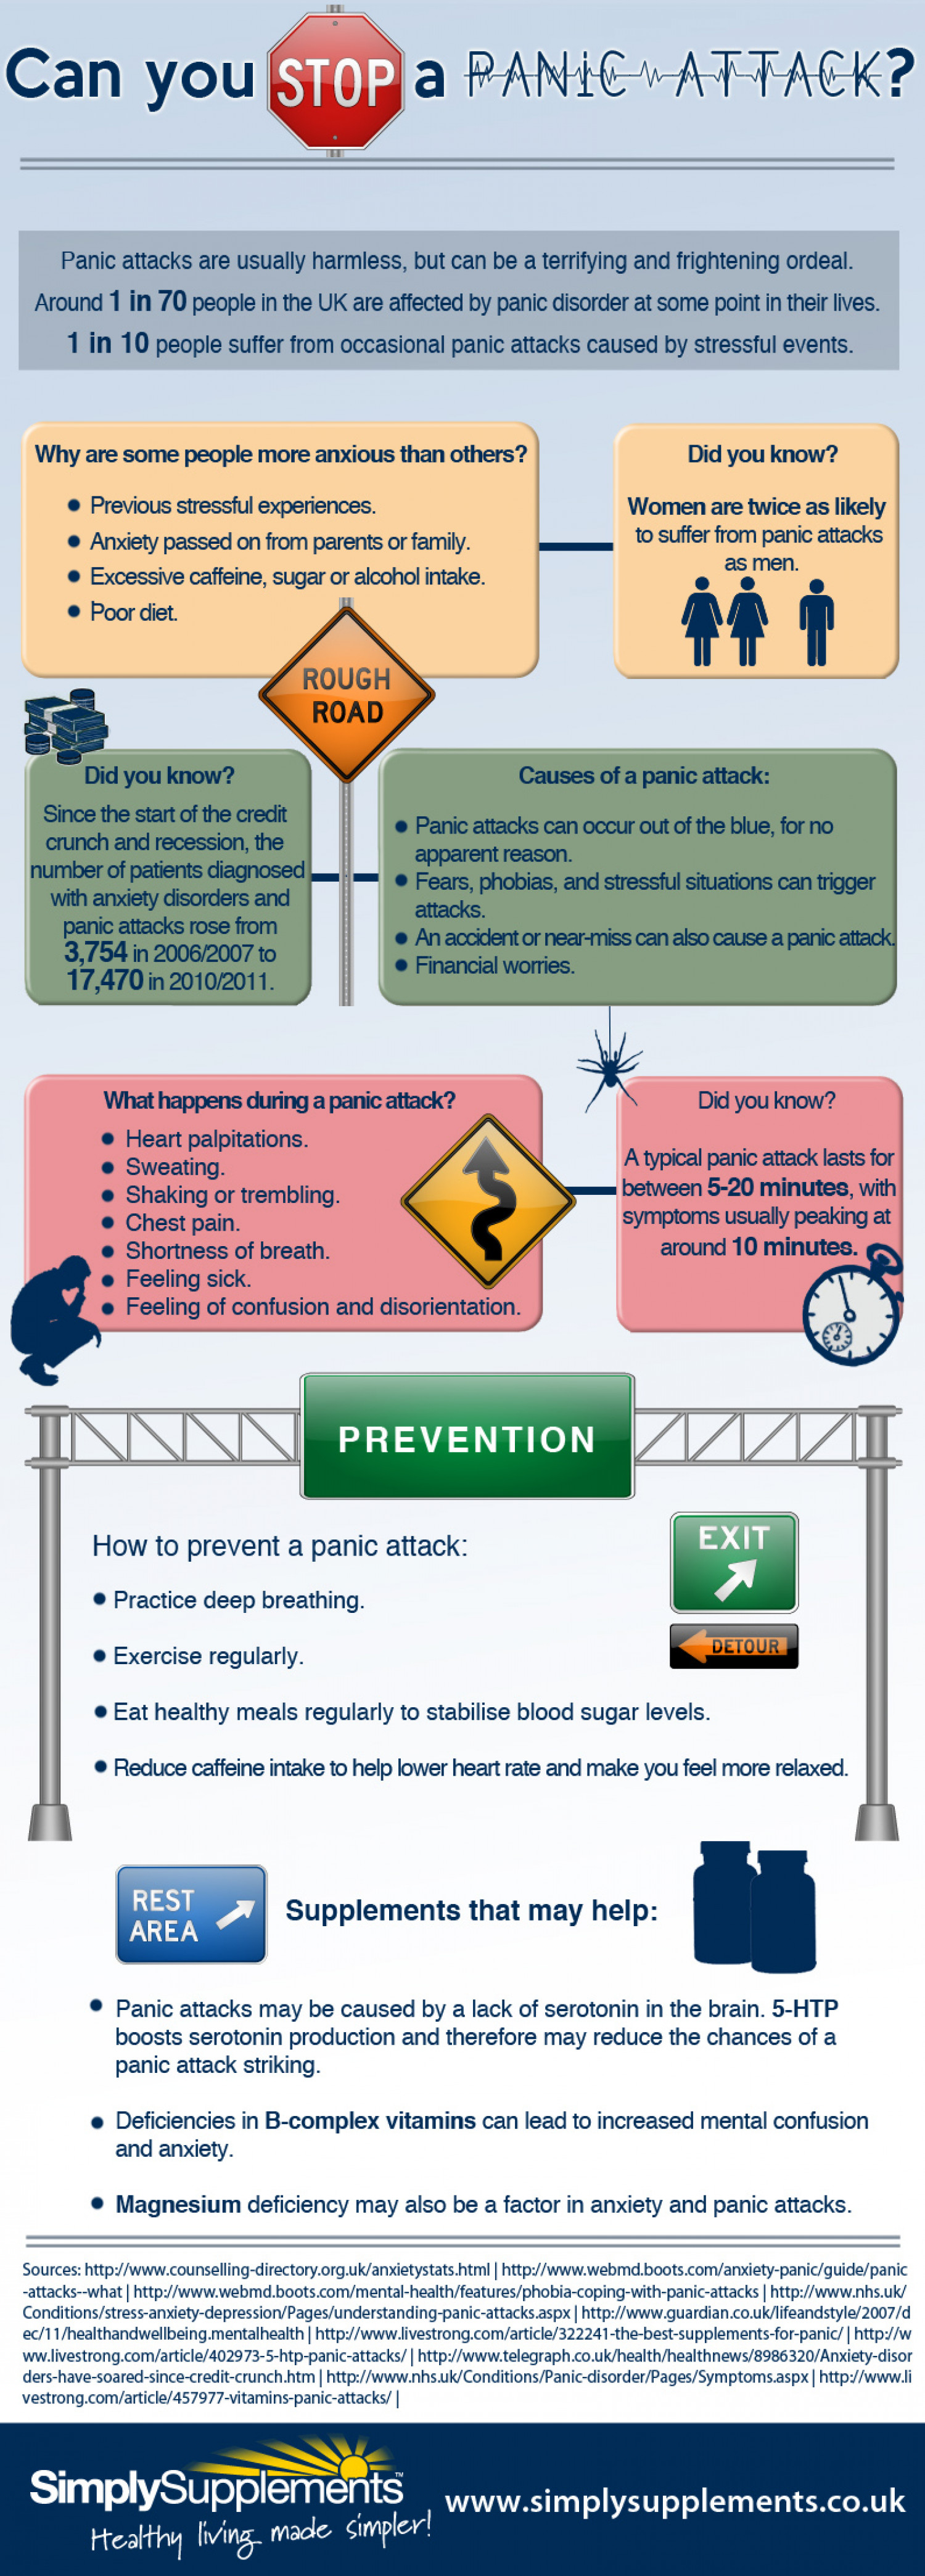 Can you stop a panic attack? Infographic